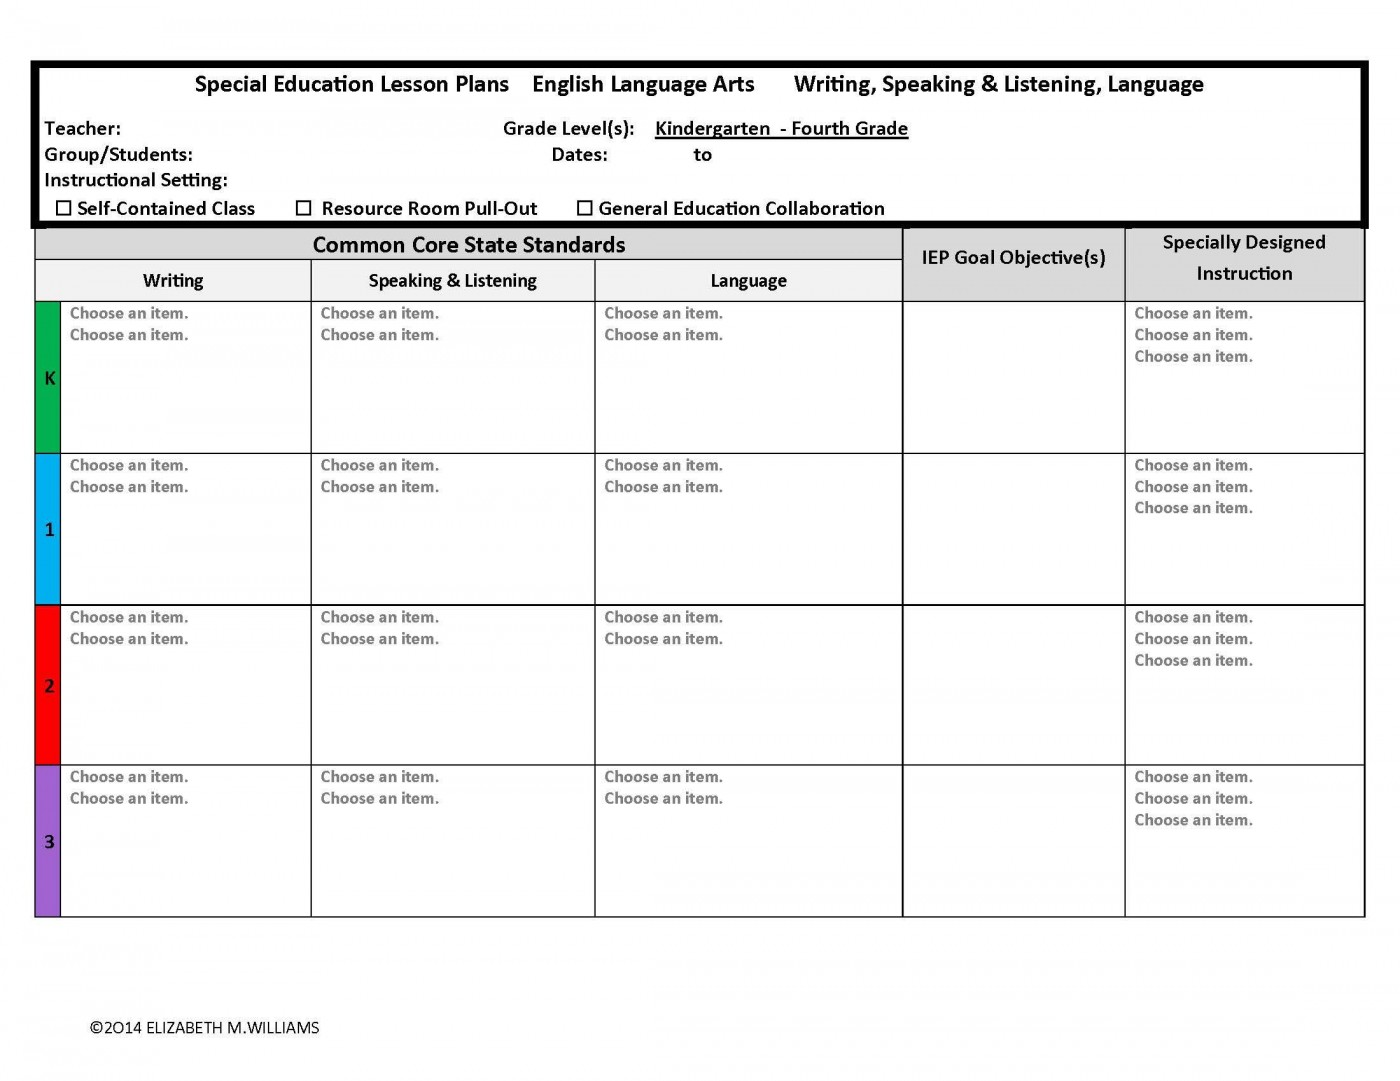 003 Unforgettable Lesson Plan Template For Kindergarten Common Core Highest Clarity 1400